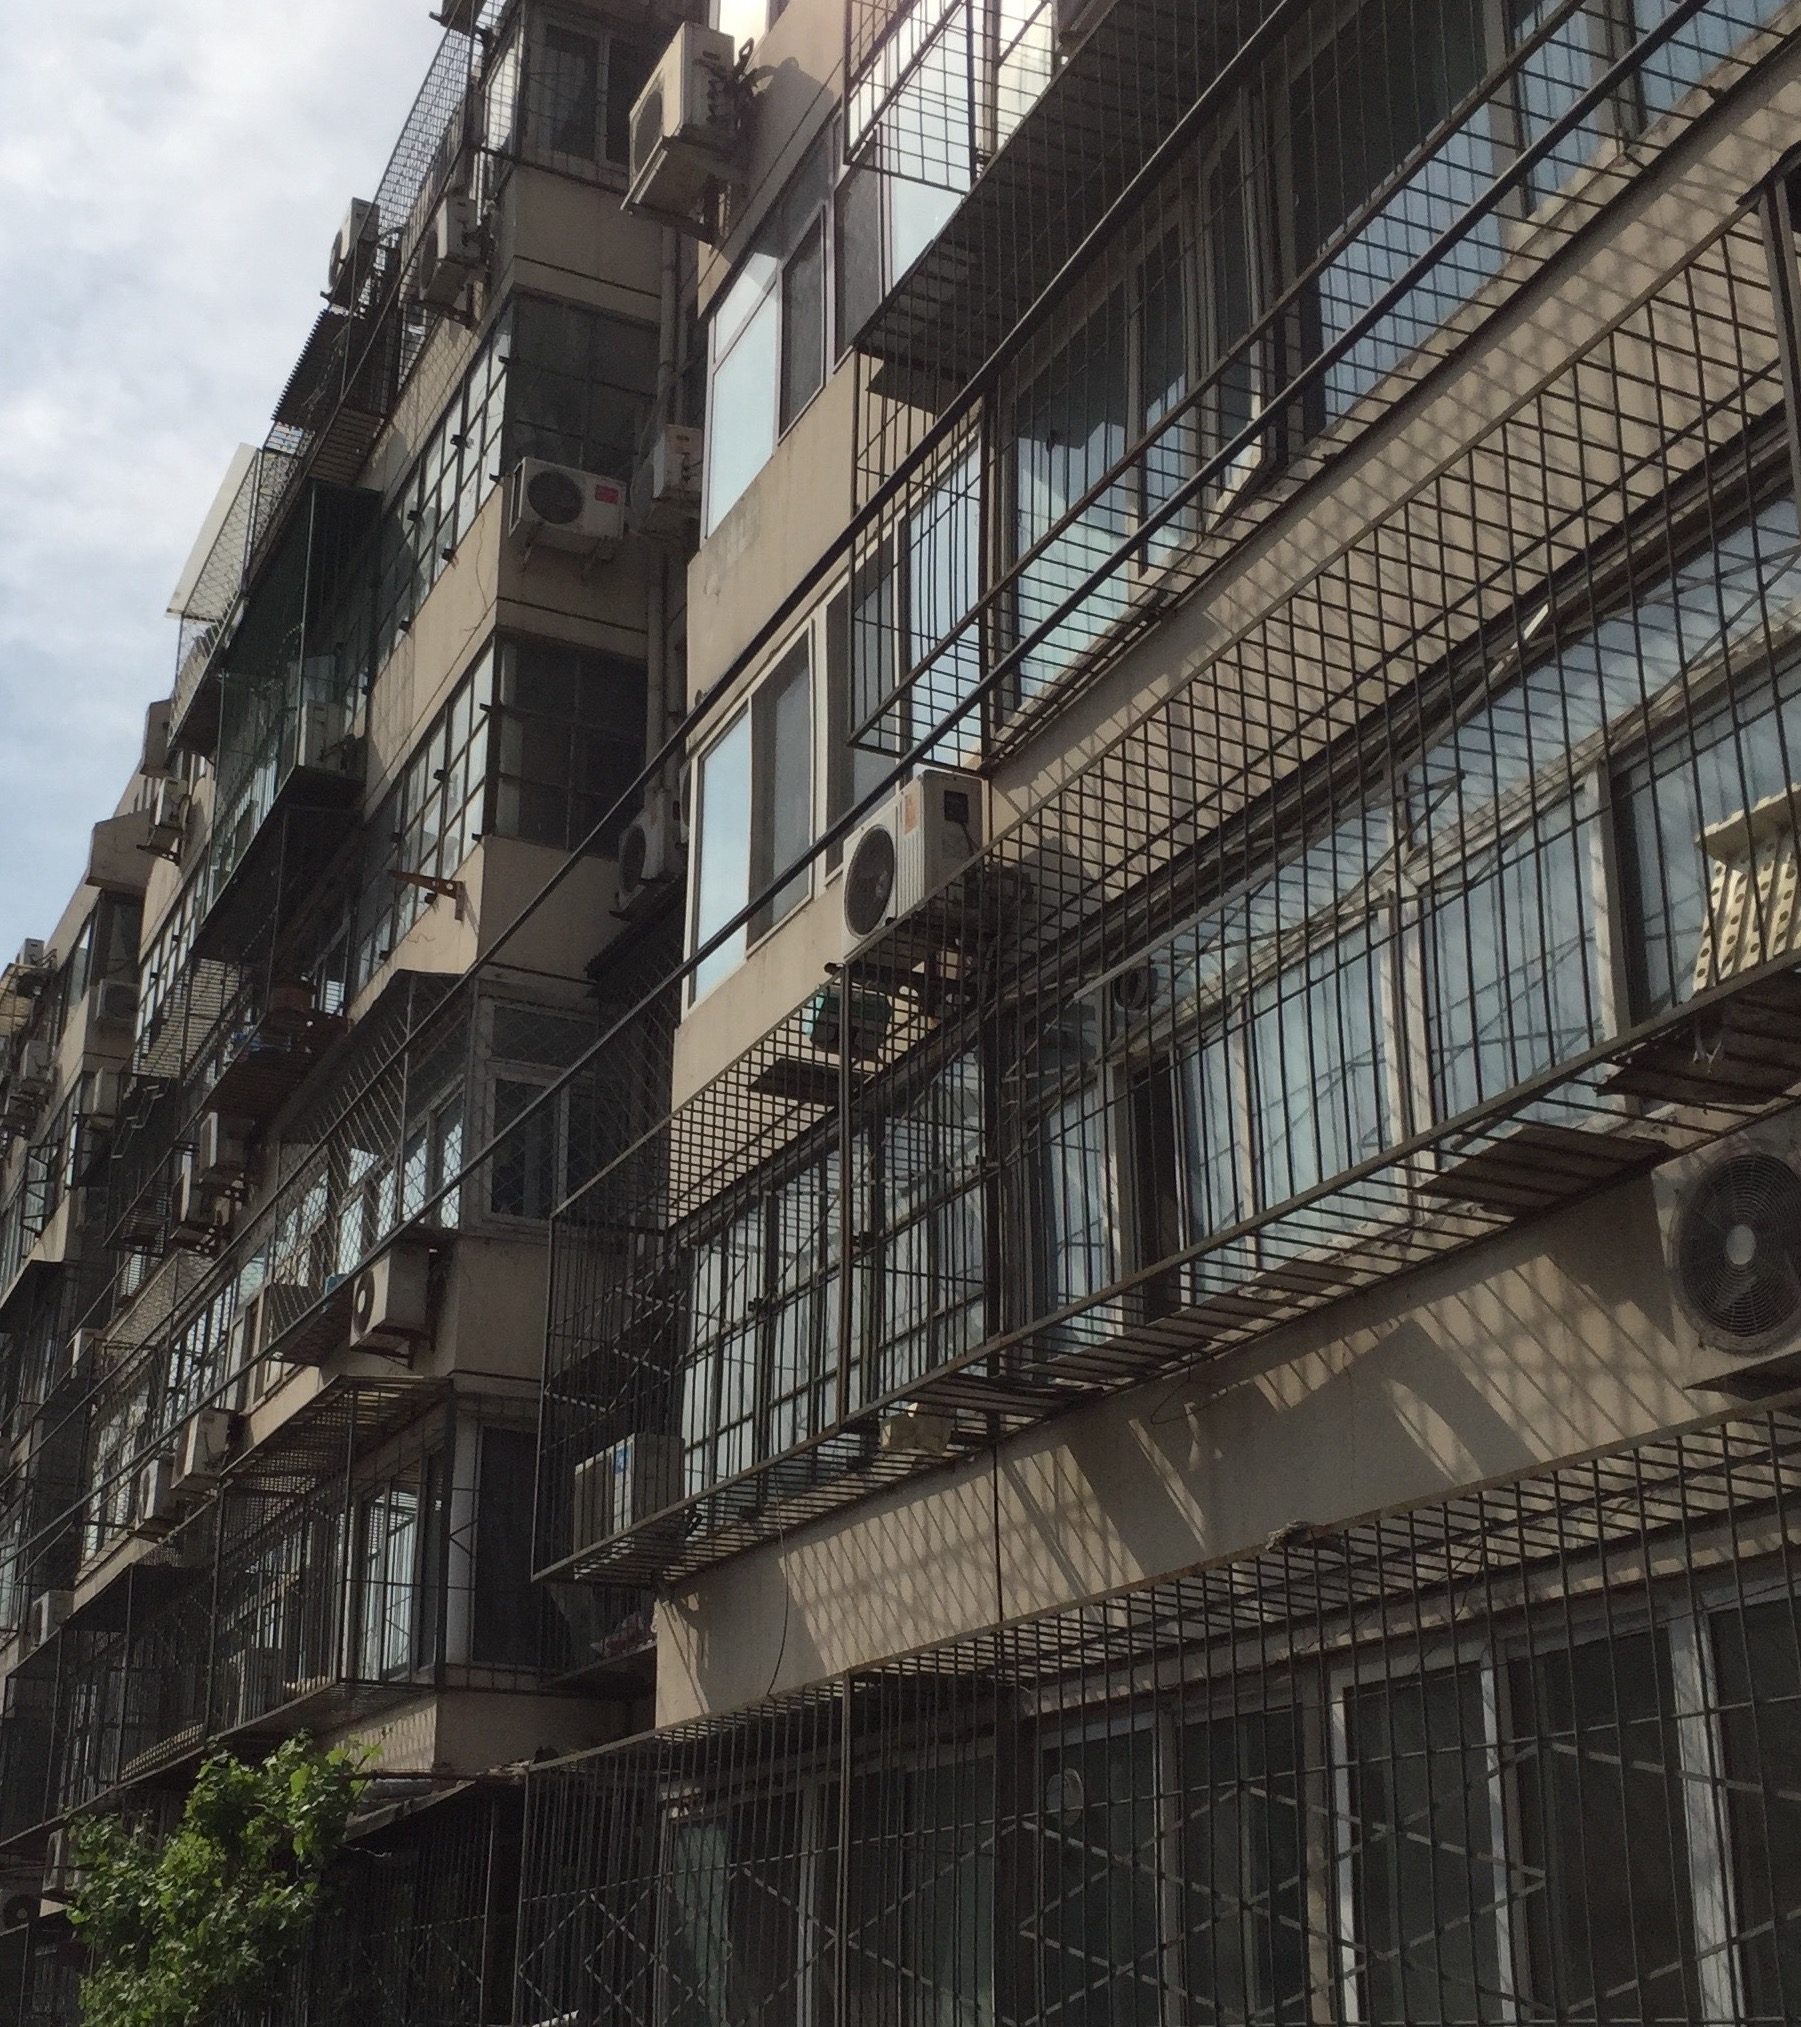 Apartments in the Haidian district  - the student heartland of Beijing